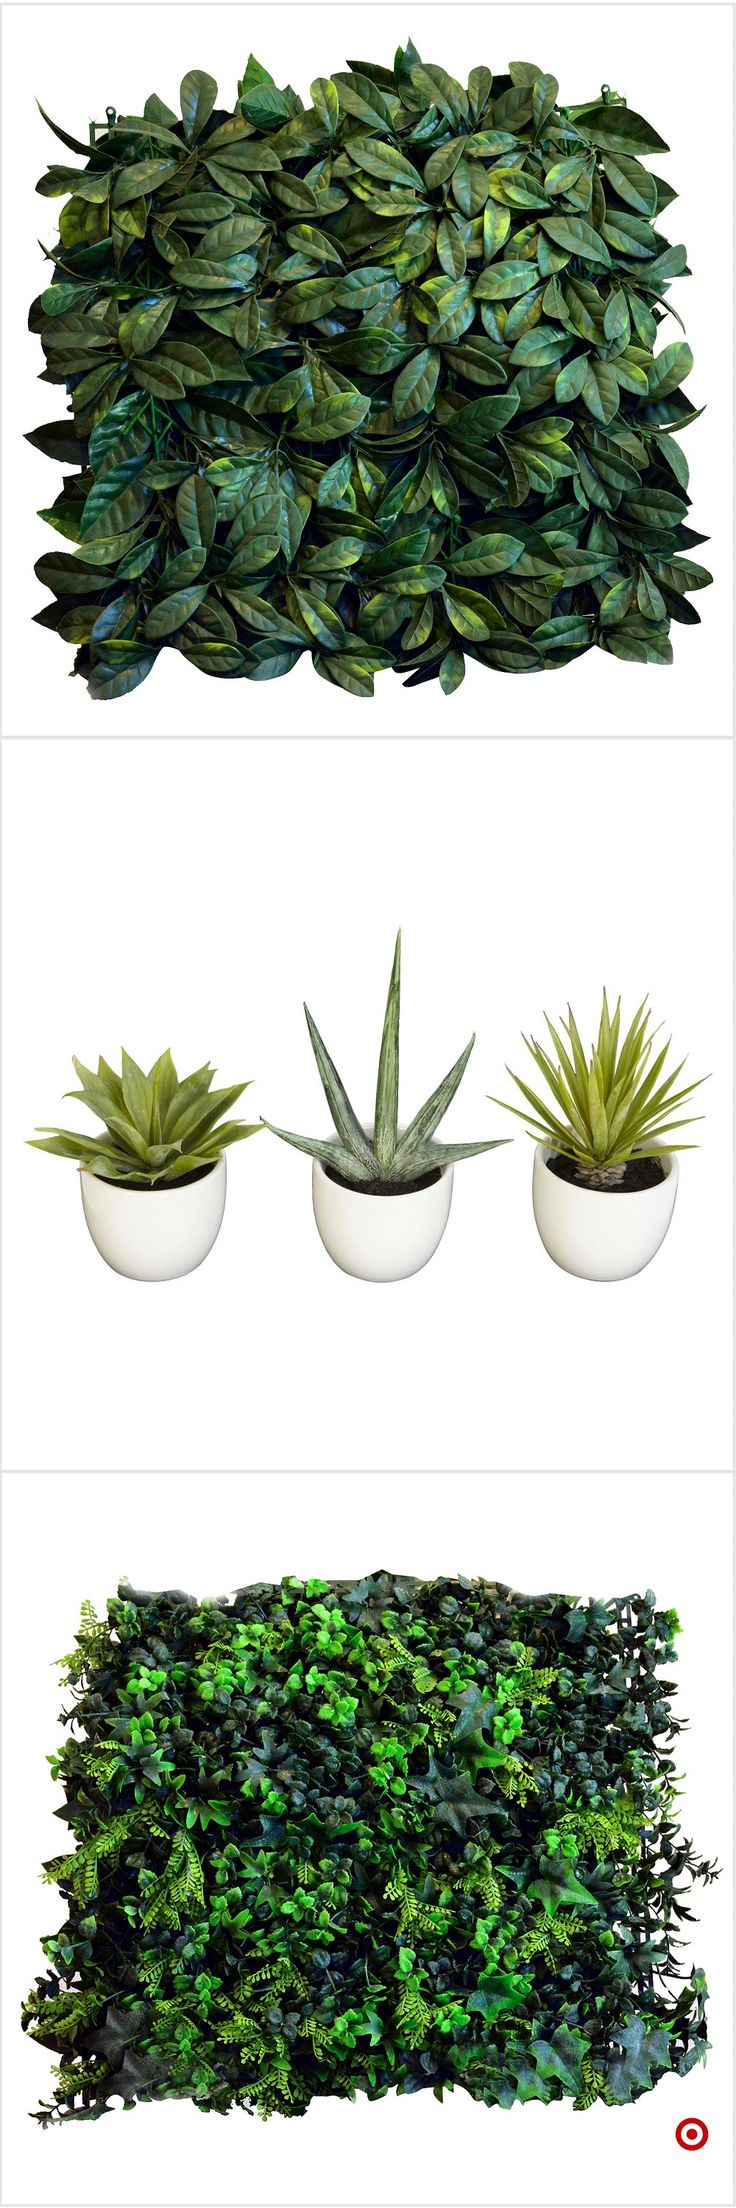 Shop Target for artificial plant set you will love at great low prices. Free shipping on orders of $35+ or free same-day pick-up in store.